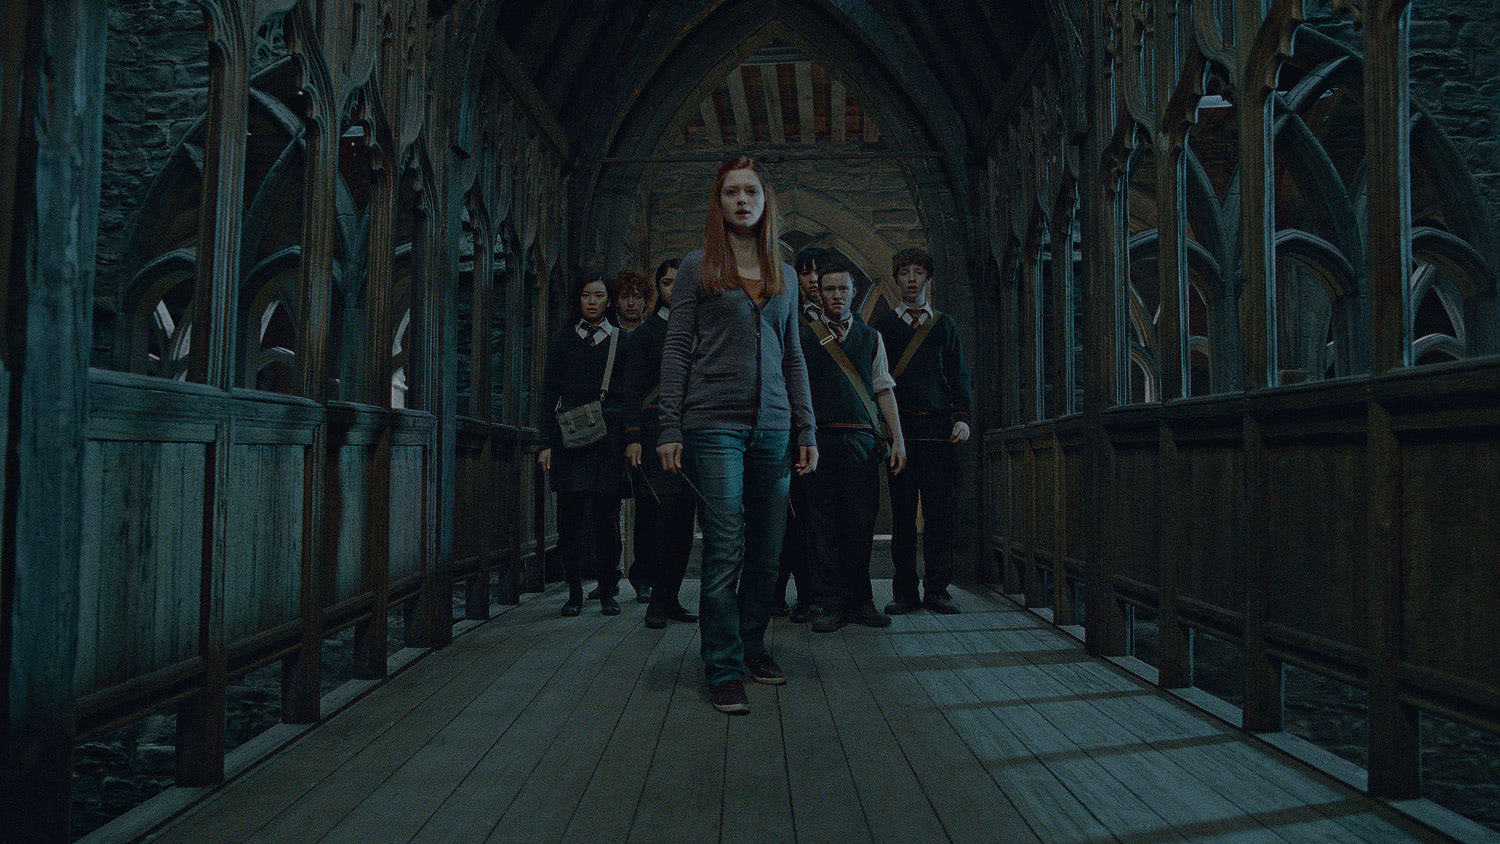 Ginny on the Hogwarts bridge